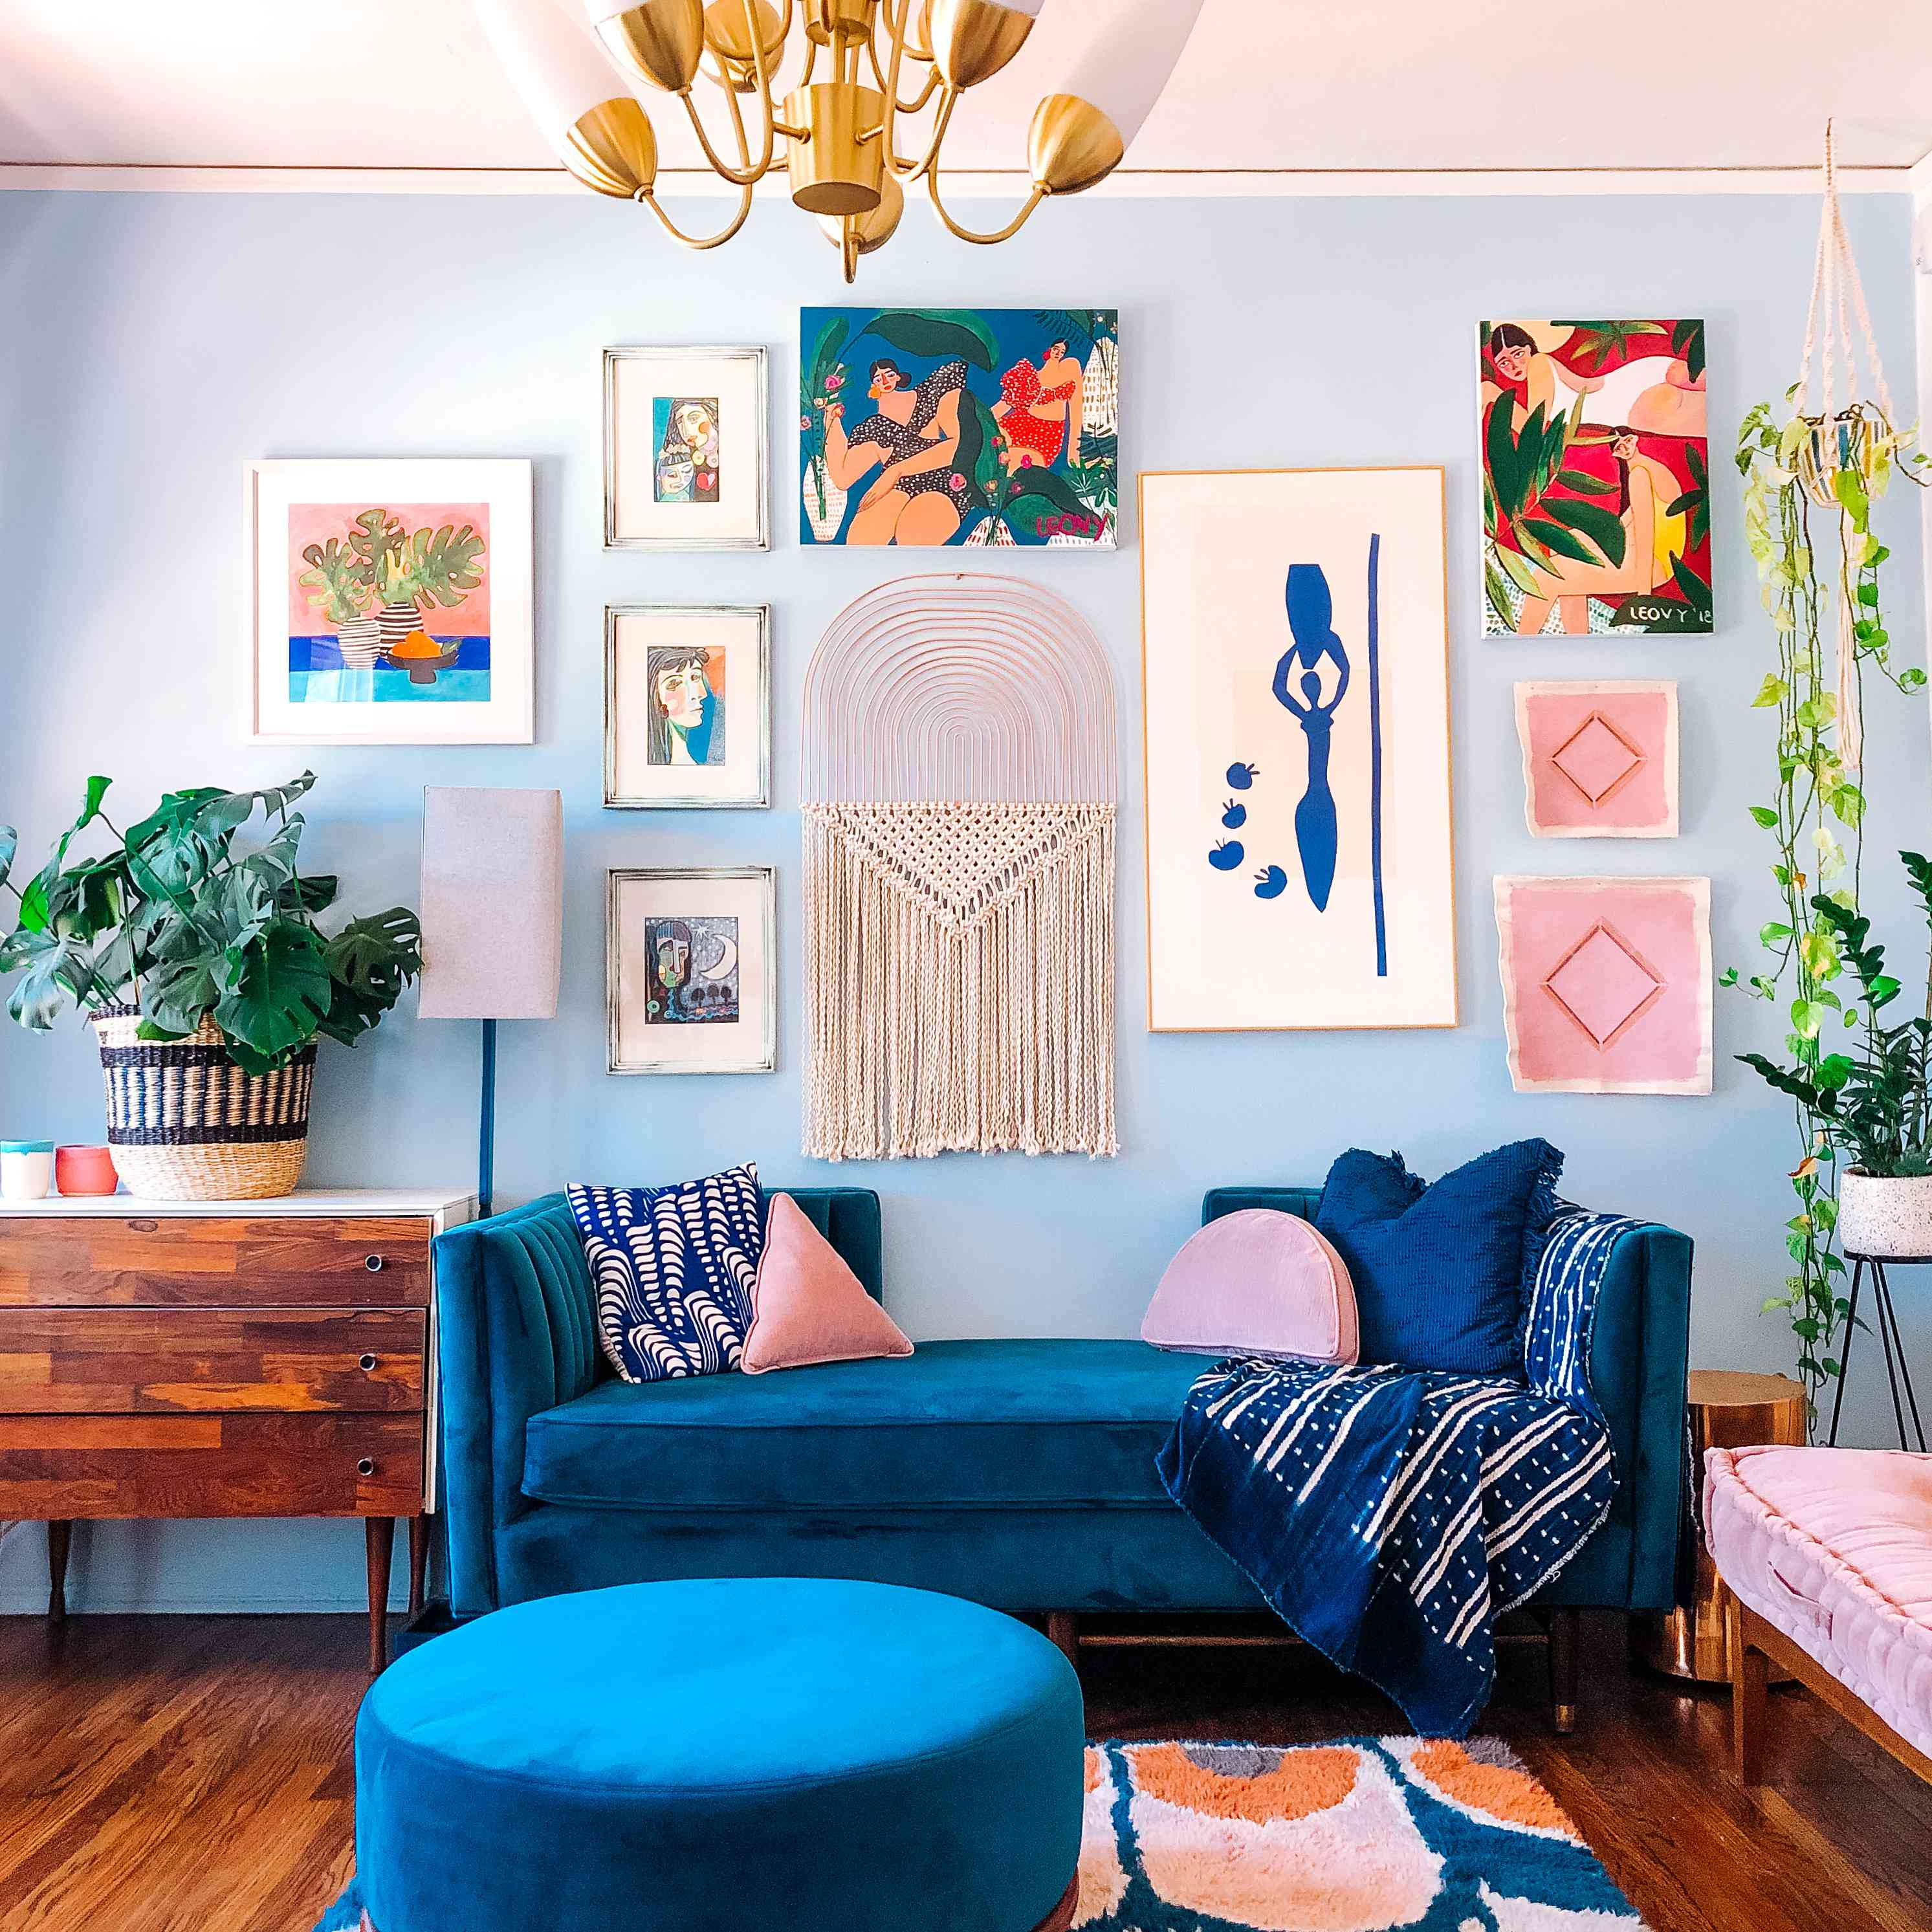 Bright blue room with colorful decor.